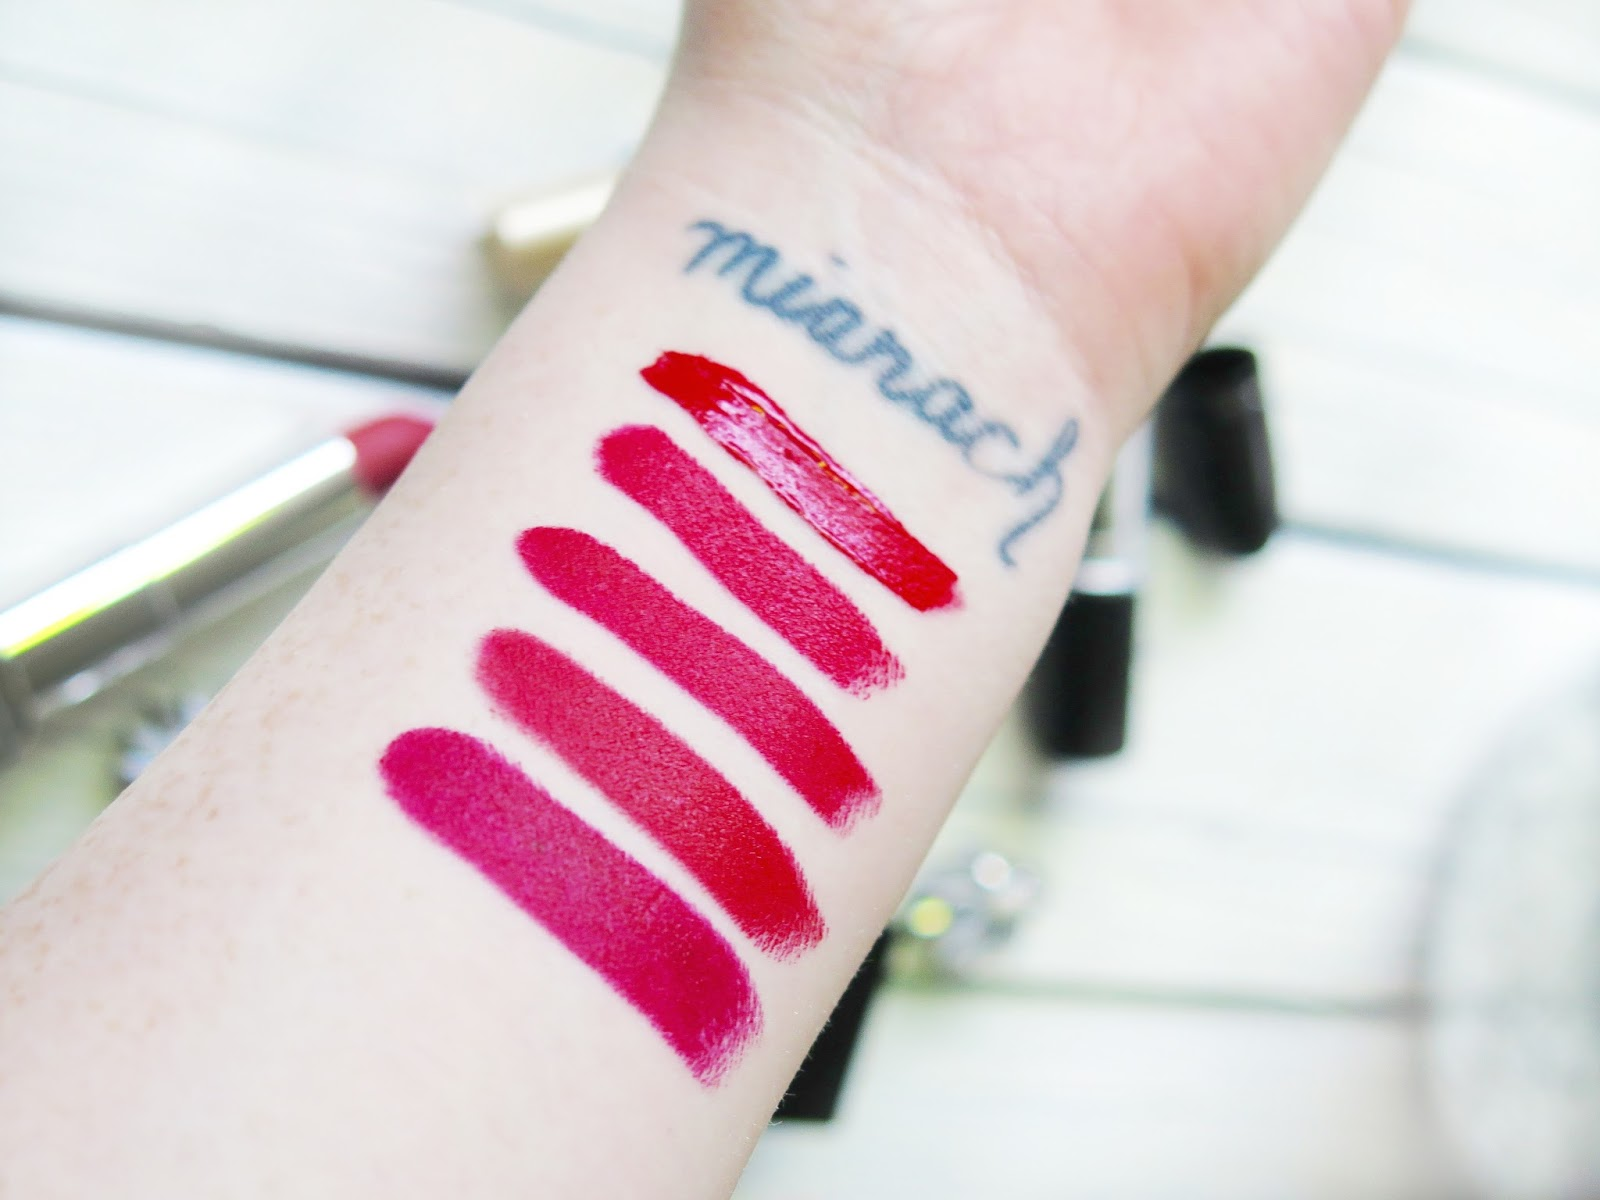 The Best Red Lipsticks For The Holiday Season - Bold Red Lipsticks from Stila, MAC, NARS, Marc Jacobs and Maybelline